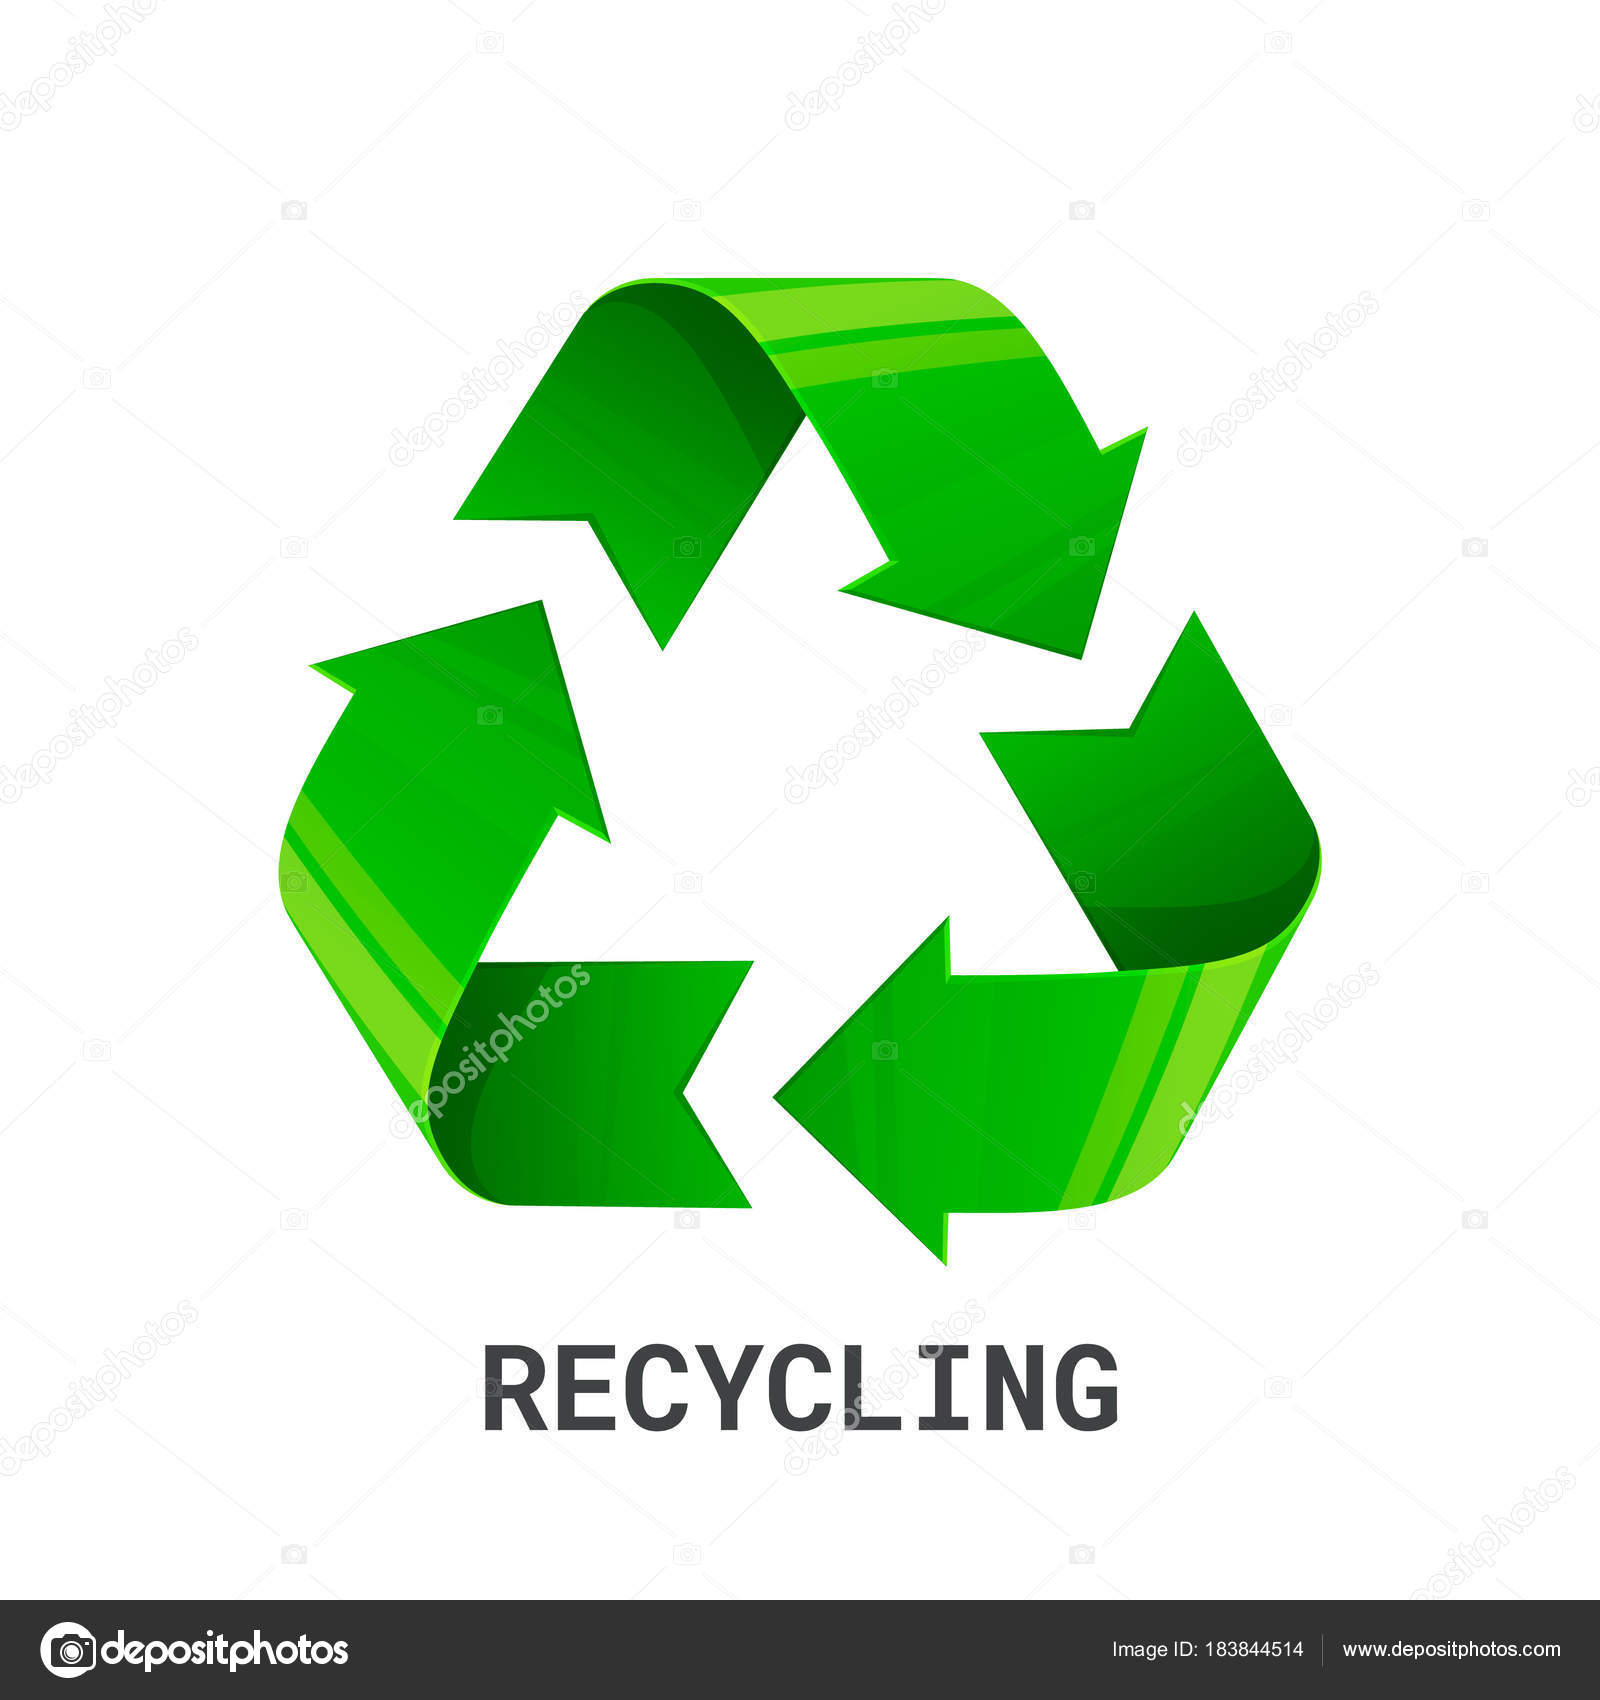 Recycling green recycle eco symbol isolated on white background recycling green recycle eco symbol isolated on white background recycled arrows sign buycottarizona Choice Image